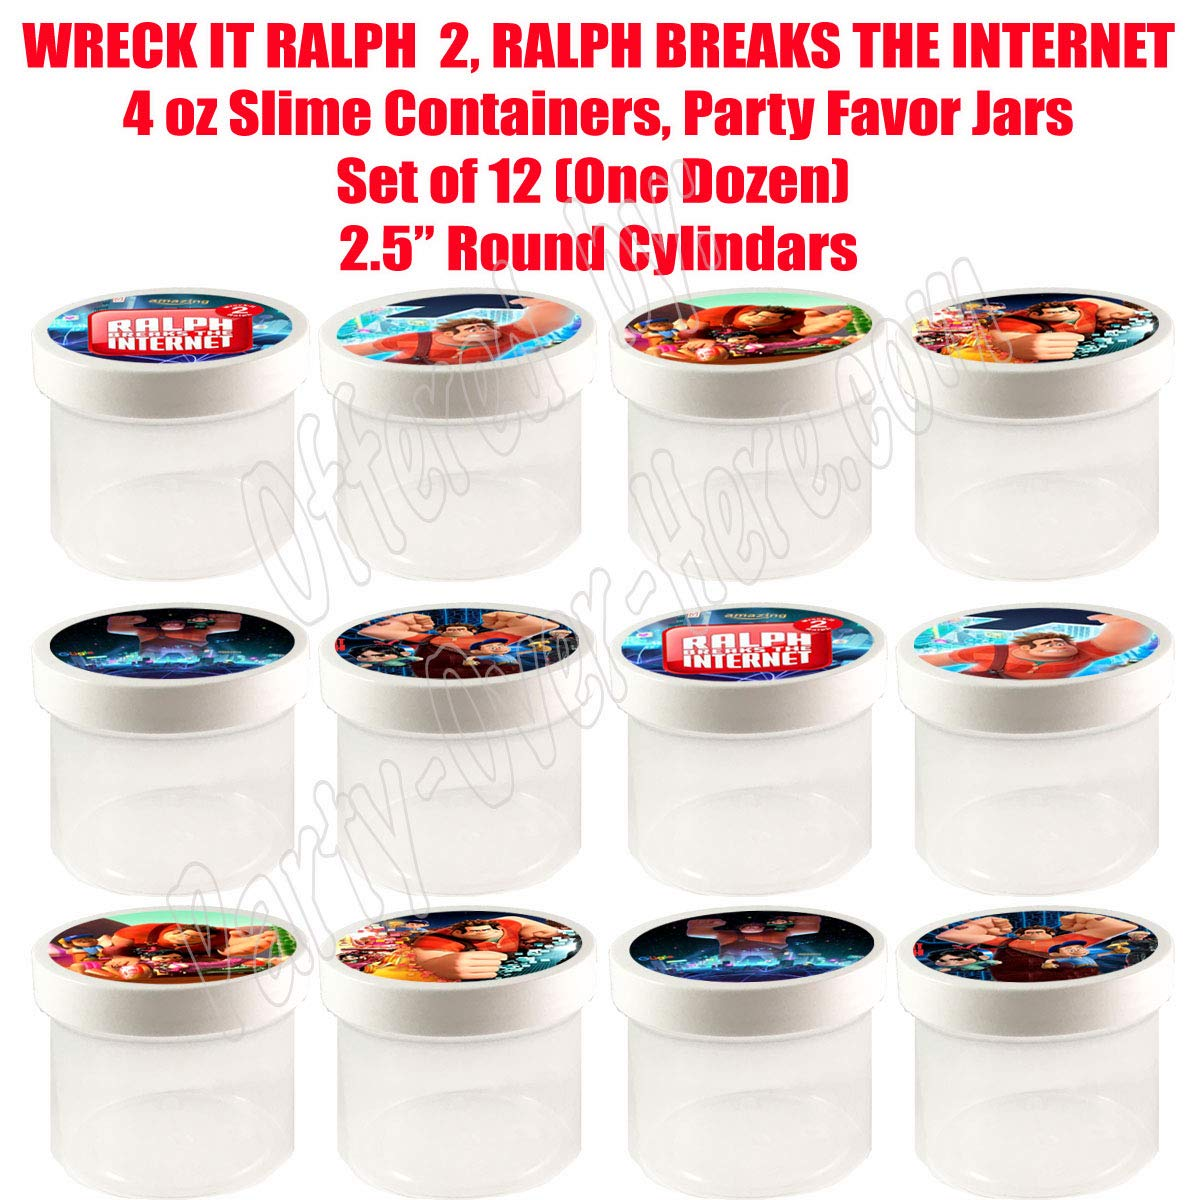 """2.5/"""" Round Cylinder -12 pcs Wreck It Ralph 2 Movie 4 oz Slime Containers Cereal Durable Plastic gumballs Party Favor Jars Ralph Breaks The Internet Put Any Candy"""